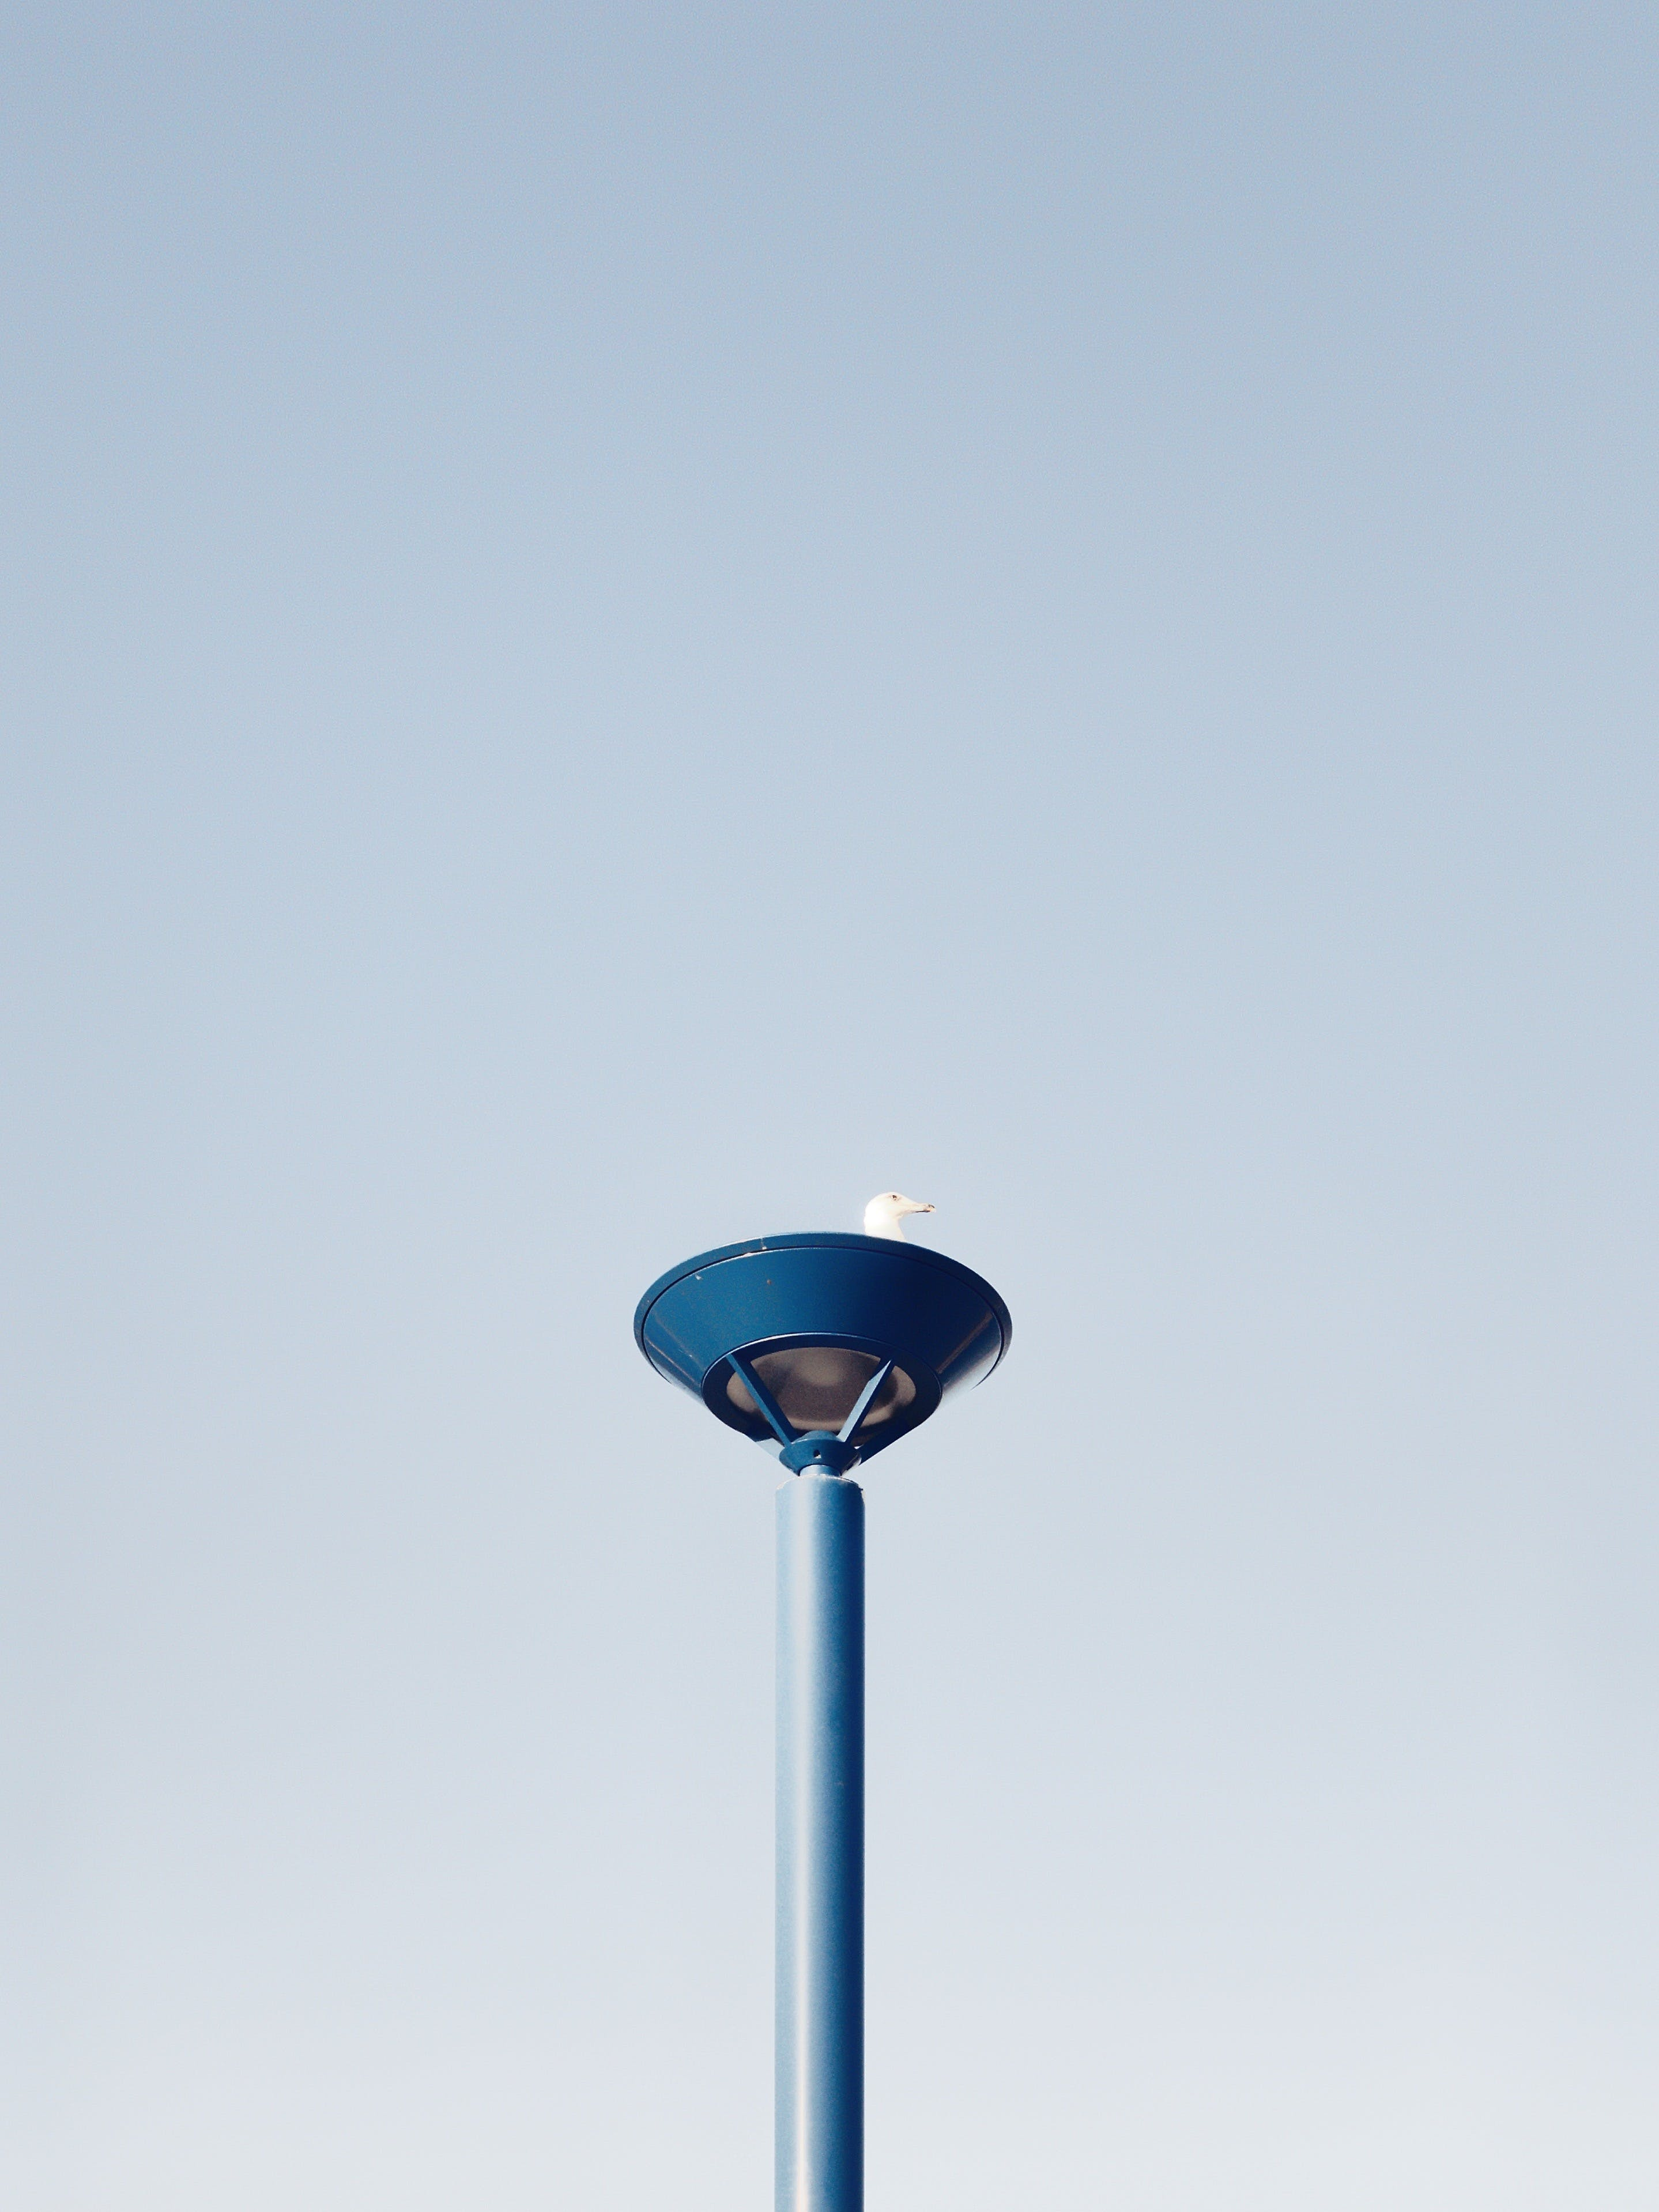 Low Angle Photo of Ring-billed Gull Perching on Blue Metal Stand